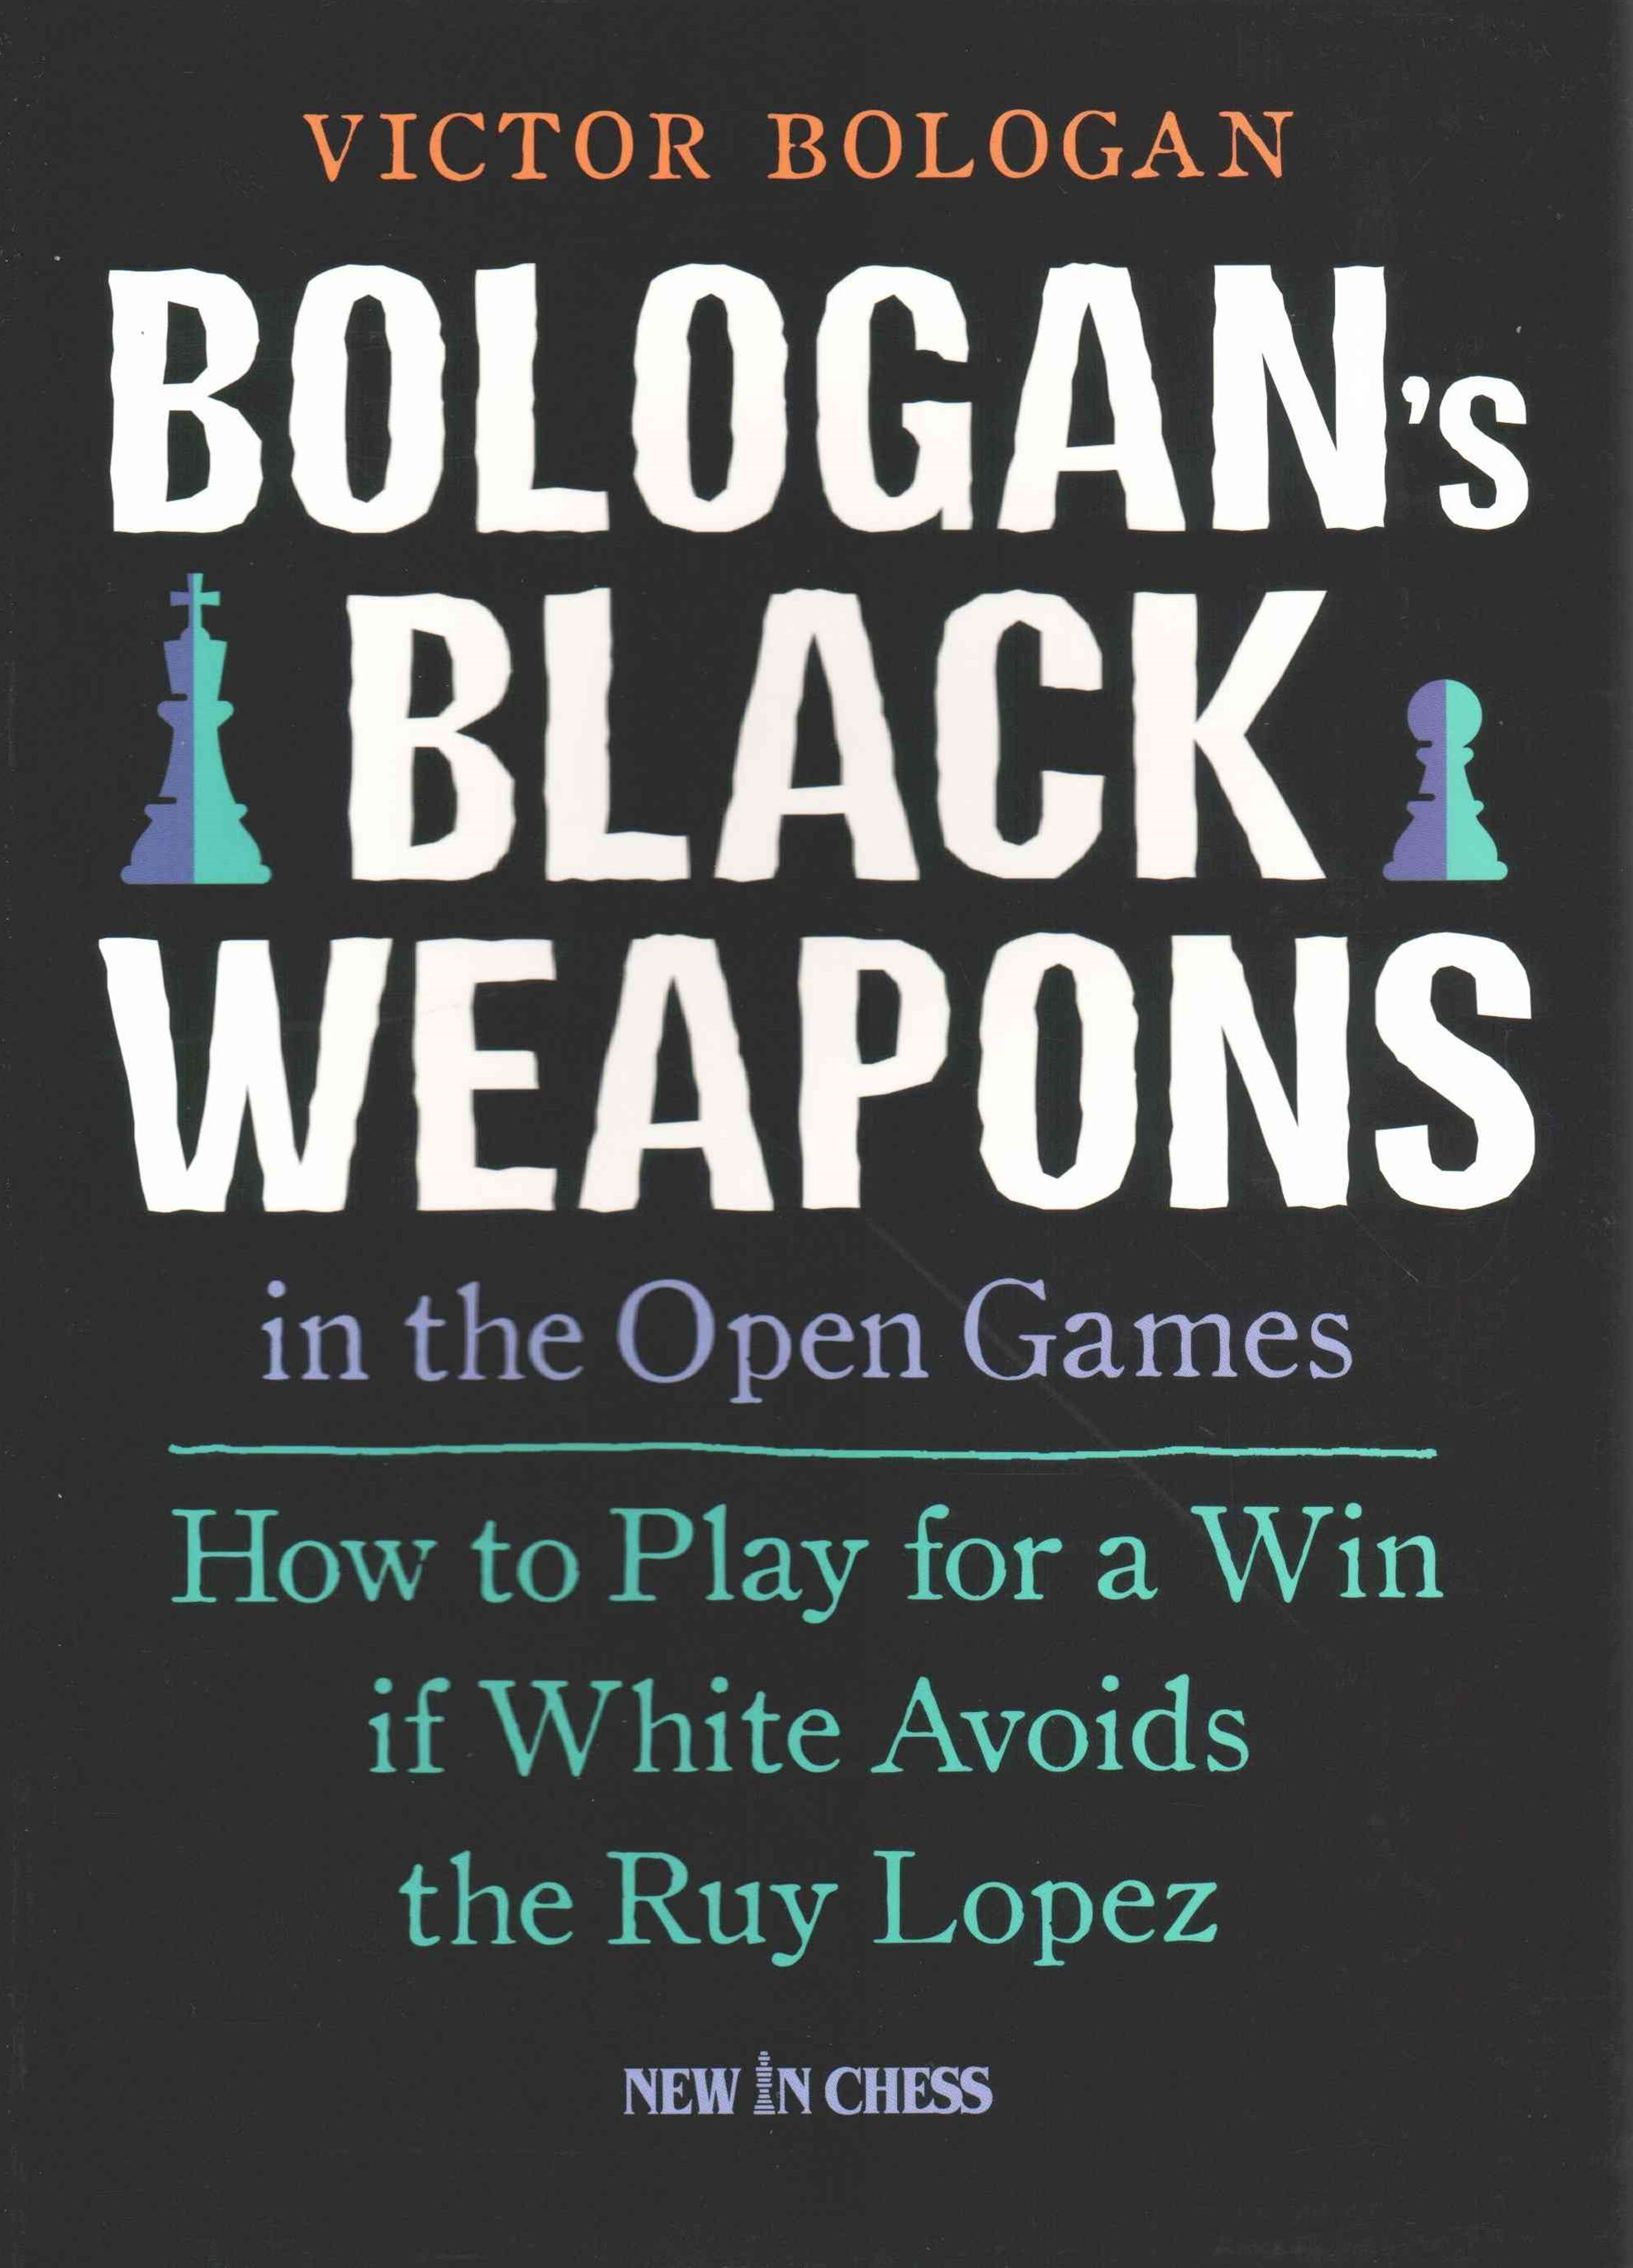 Bologan's Black Weapons in the Open Games